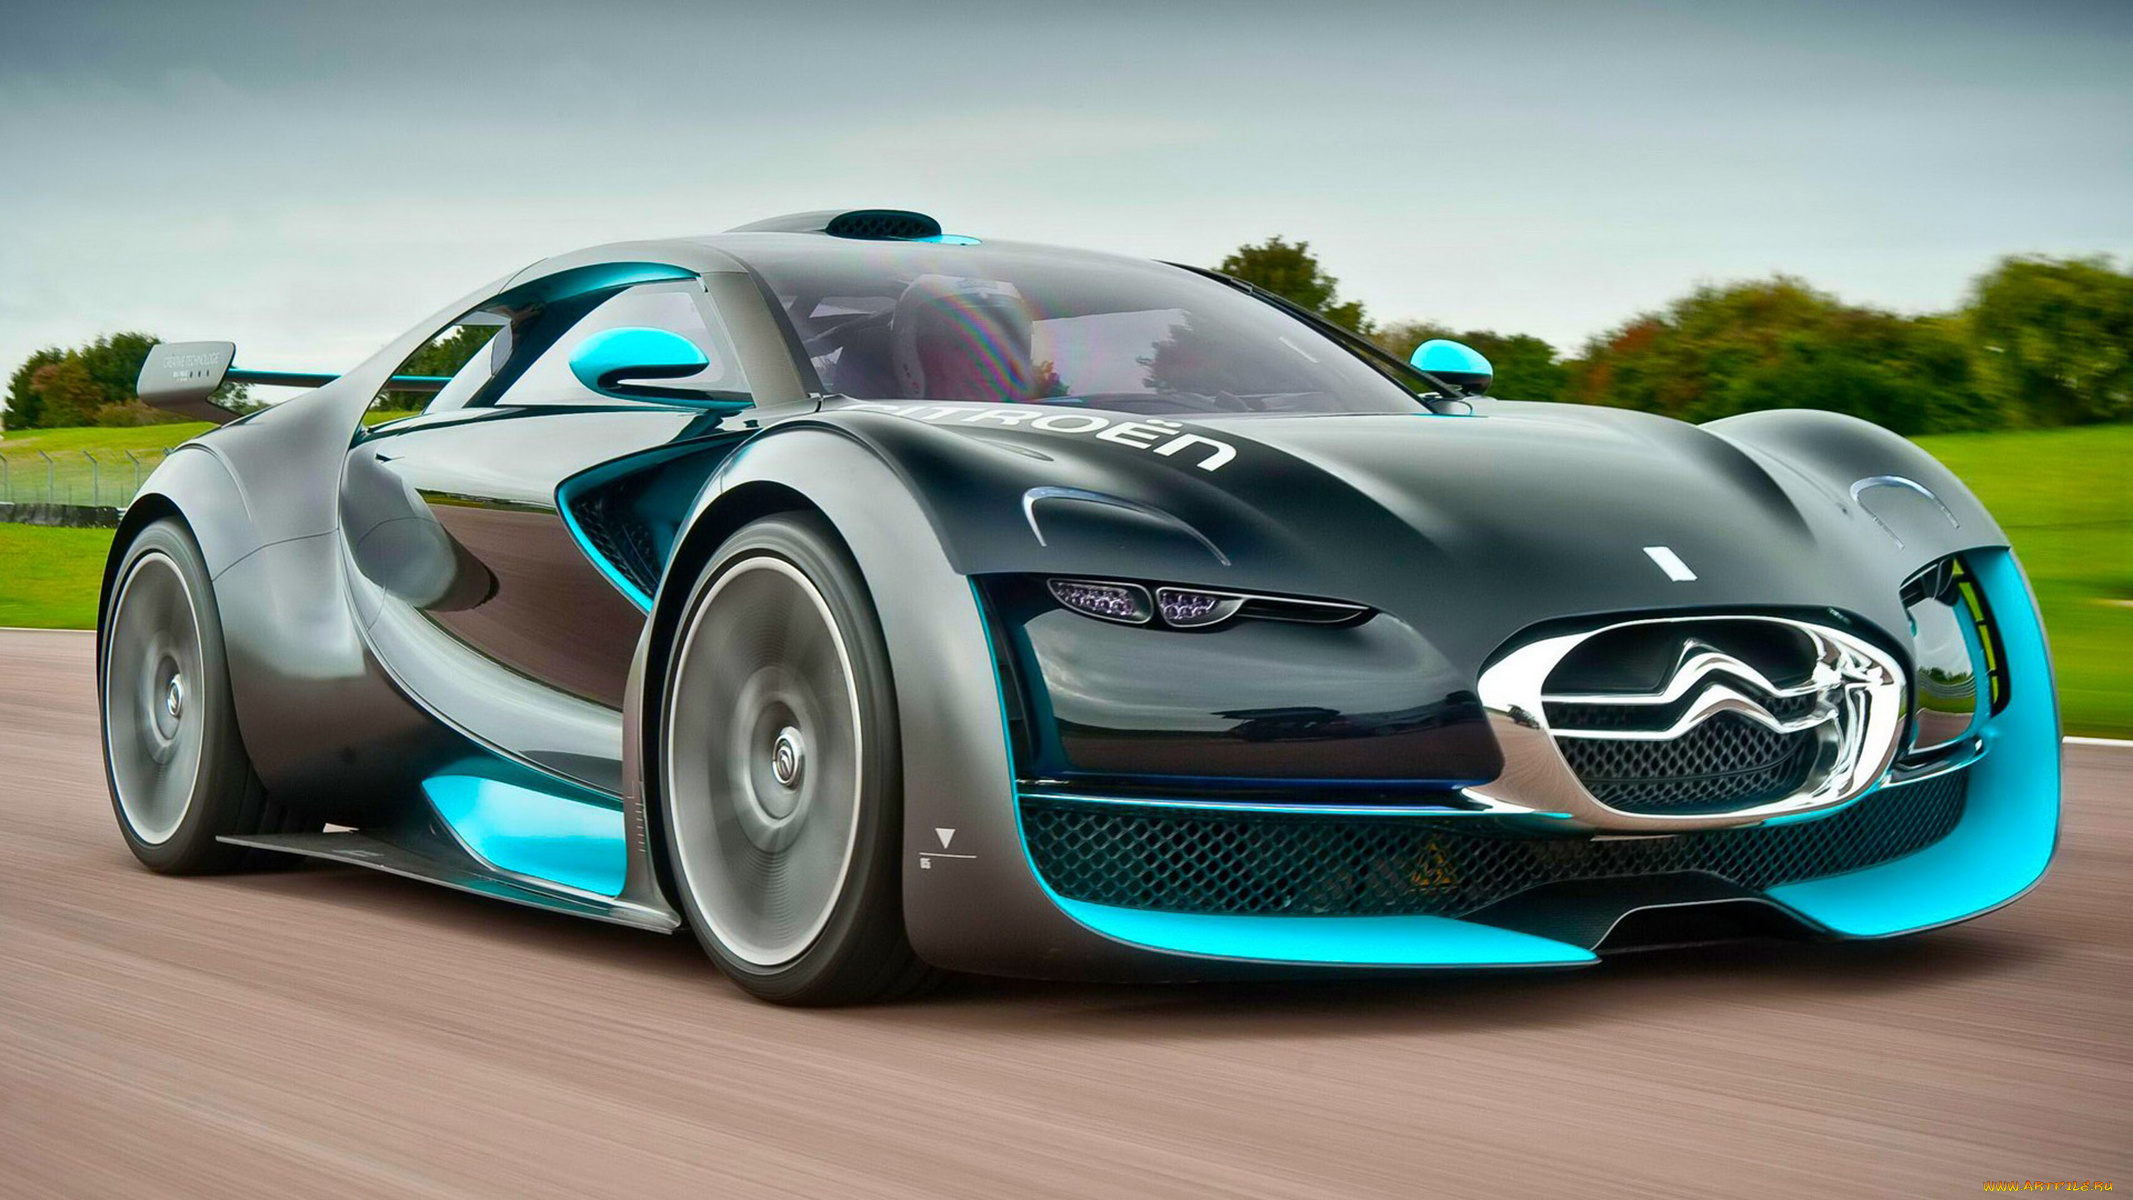 fastest cars in the world - HD1920×1080